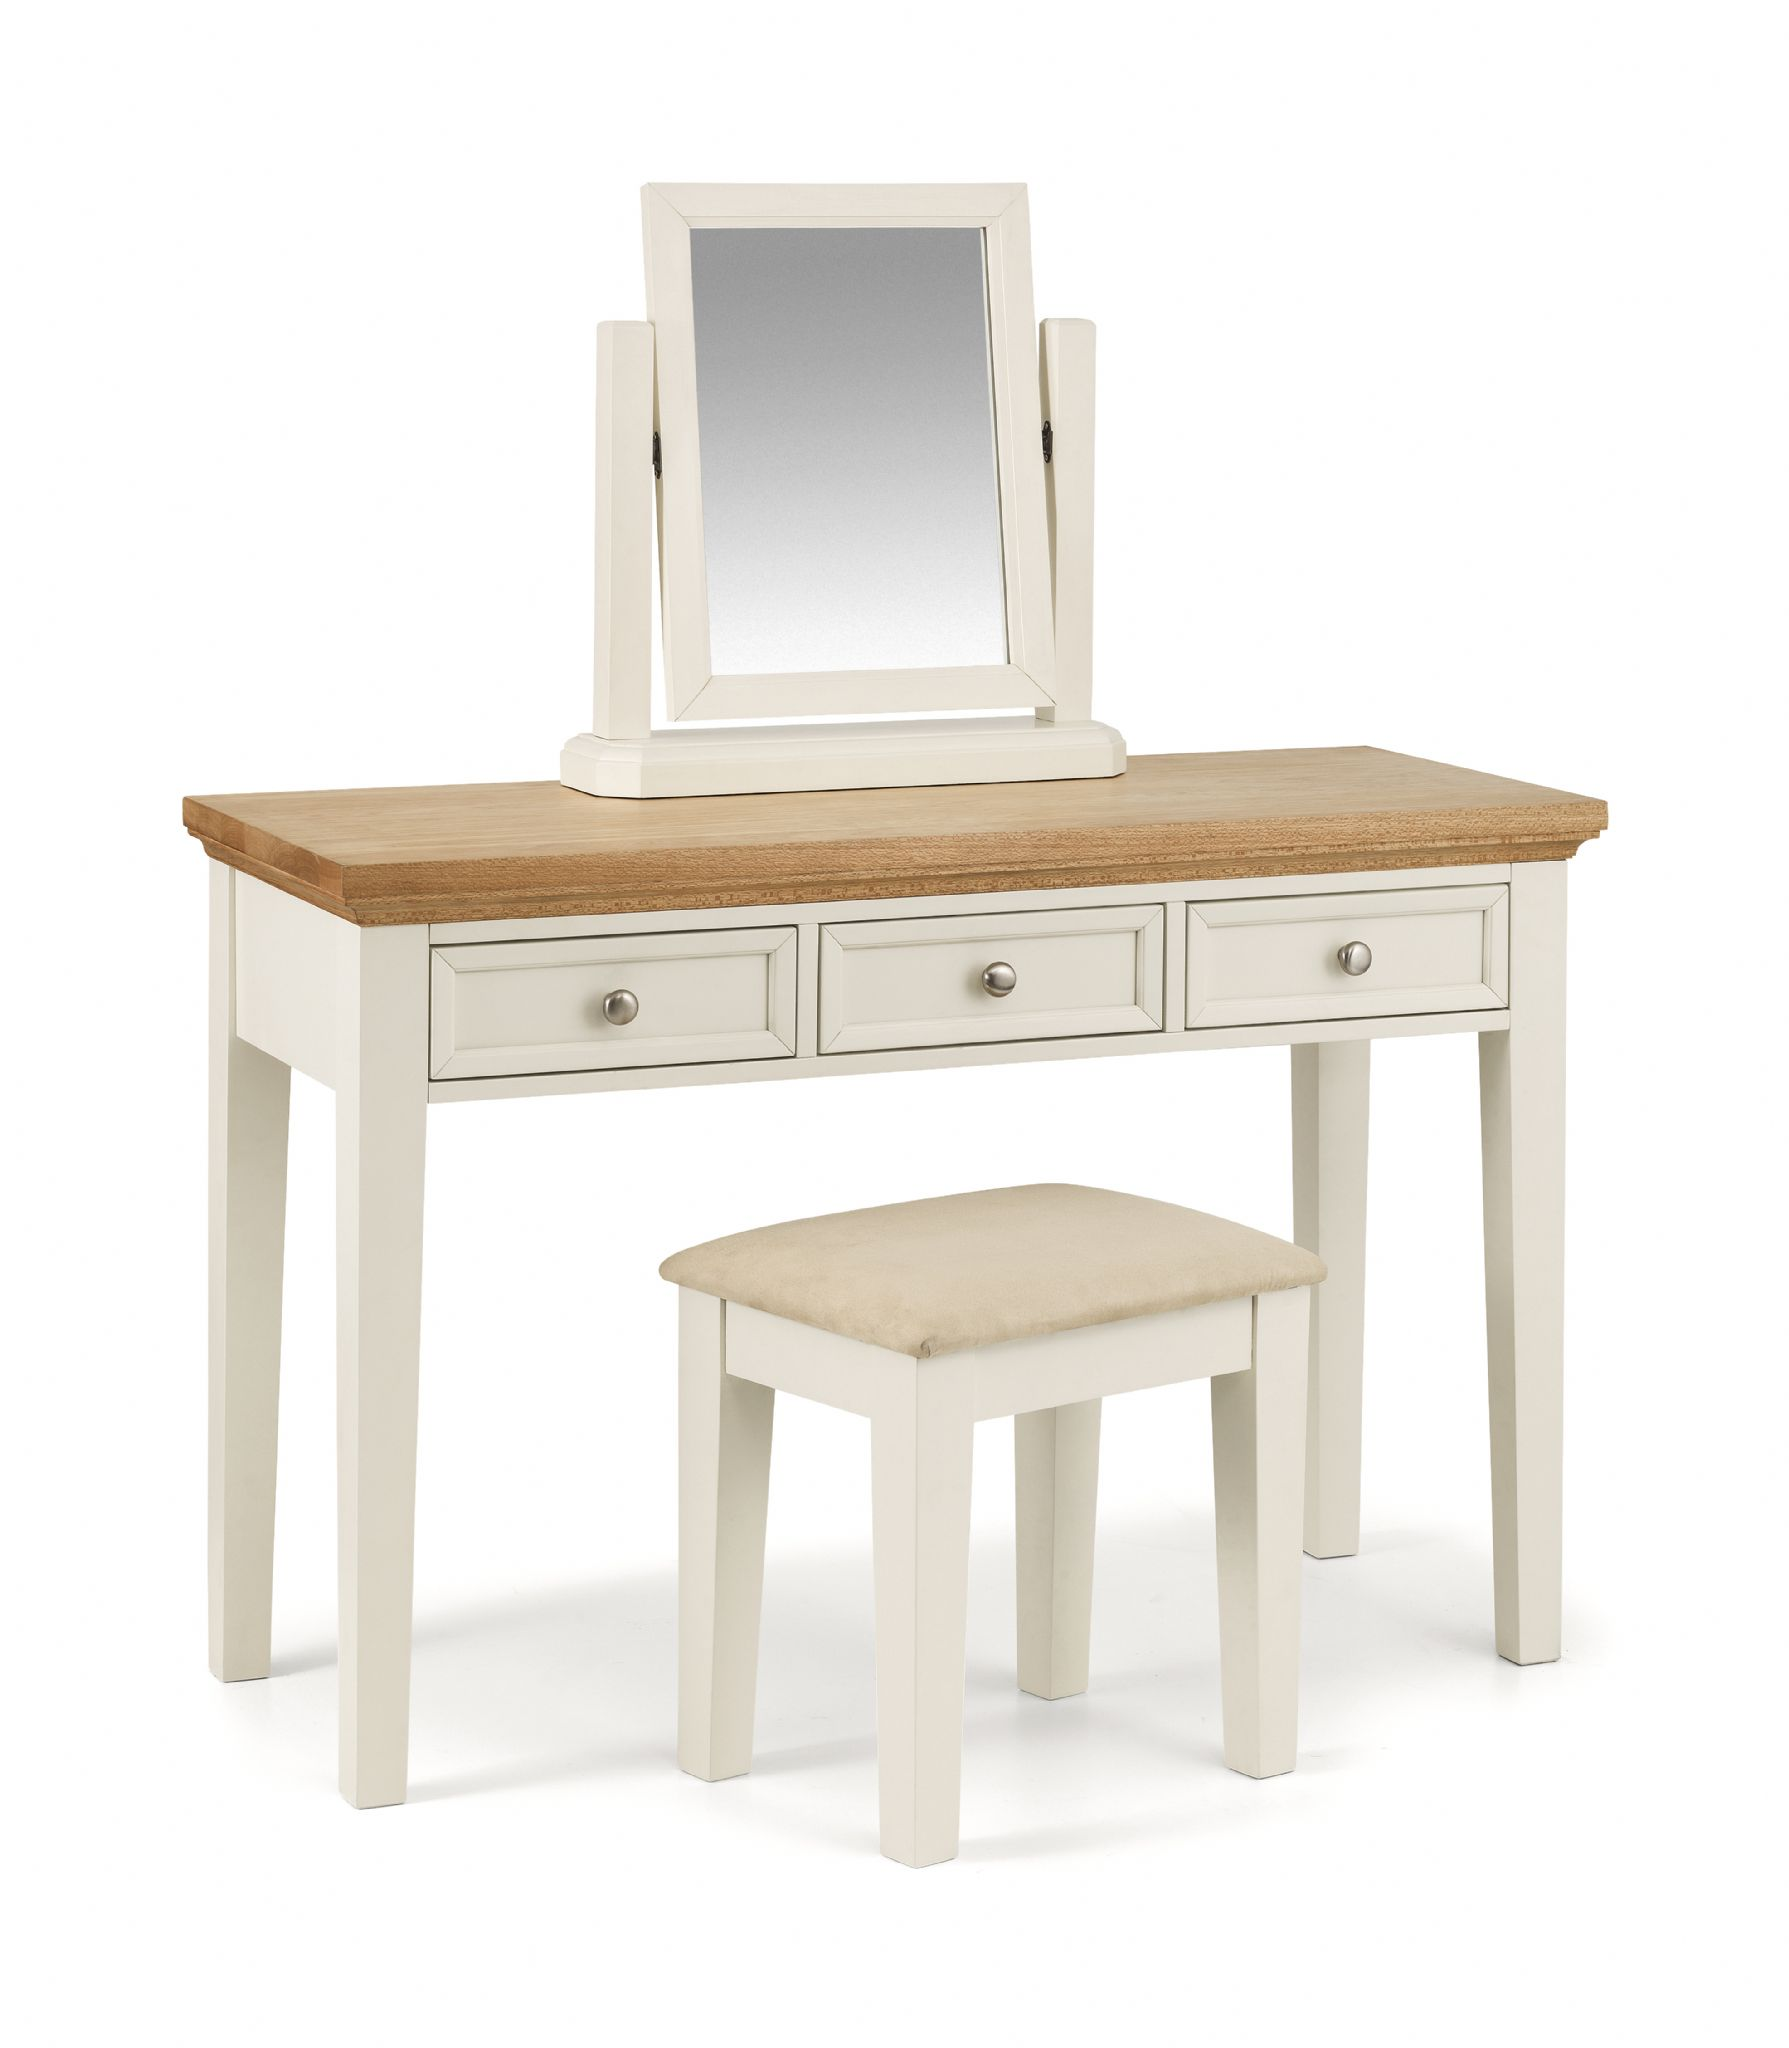 Modern White Dressing Table: Syracuse Modern Stone White Dressing Table JB426